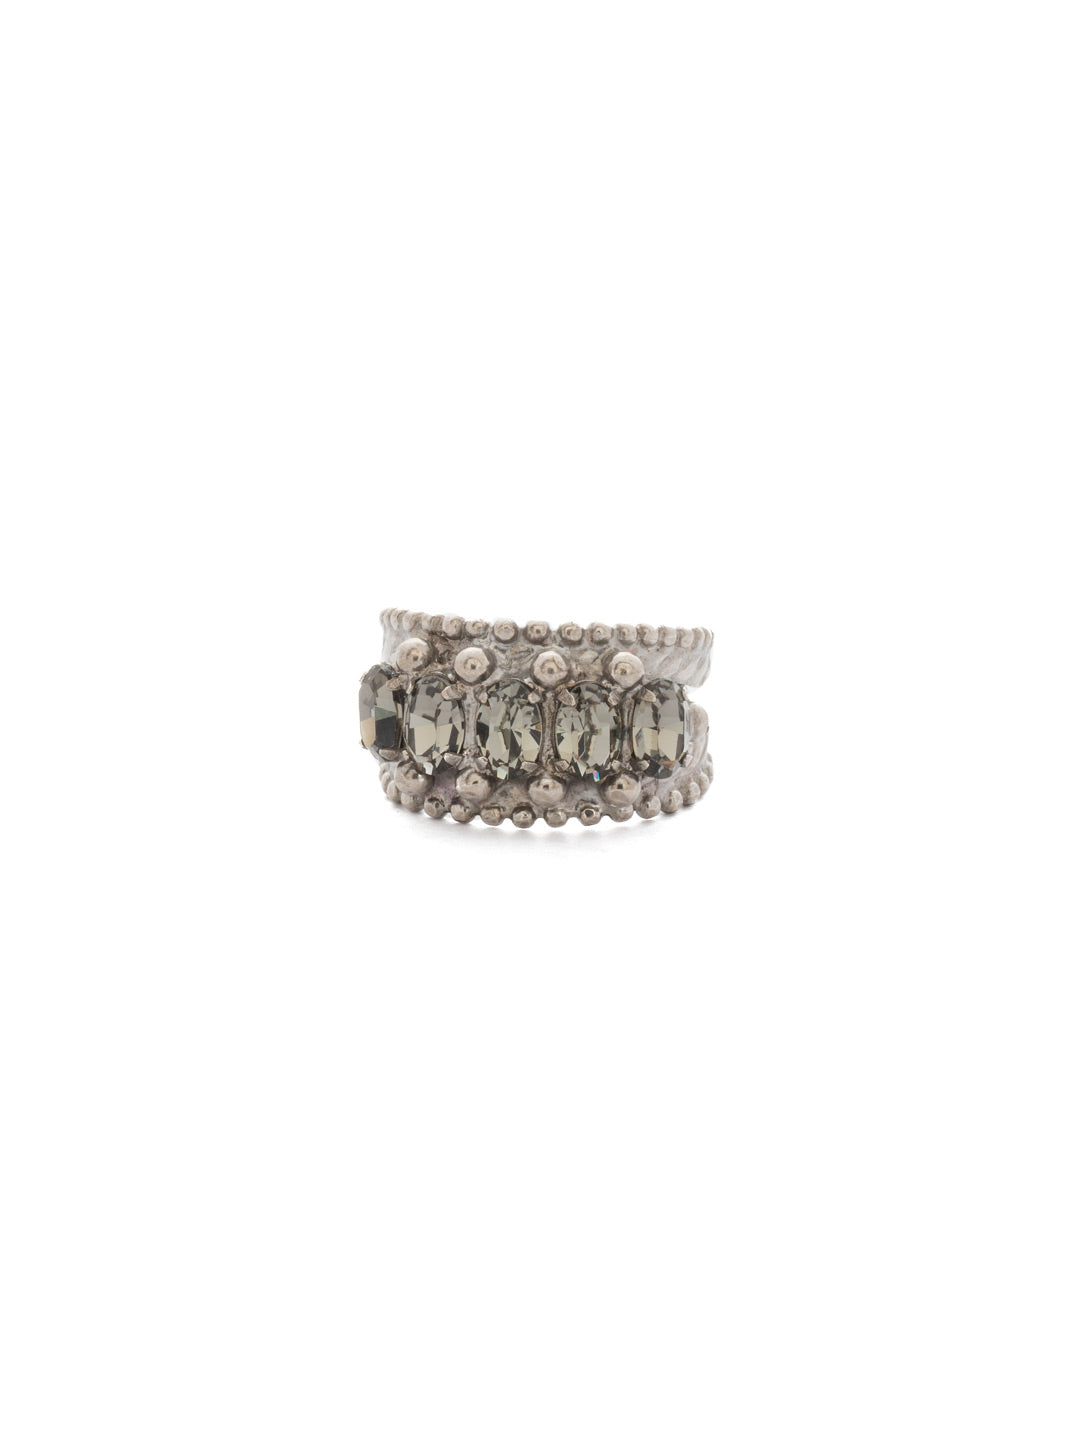 Crown Jewel Cocktail Ring - RDH2ASCRO